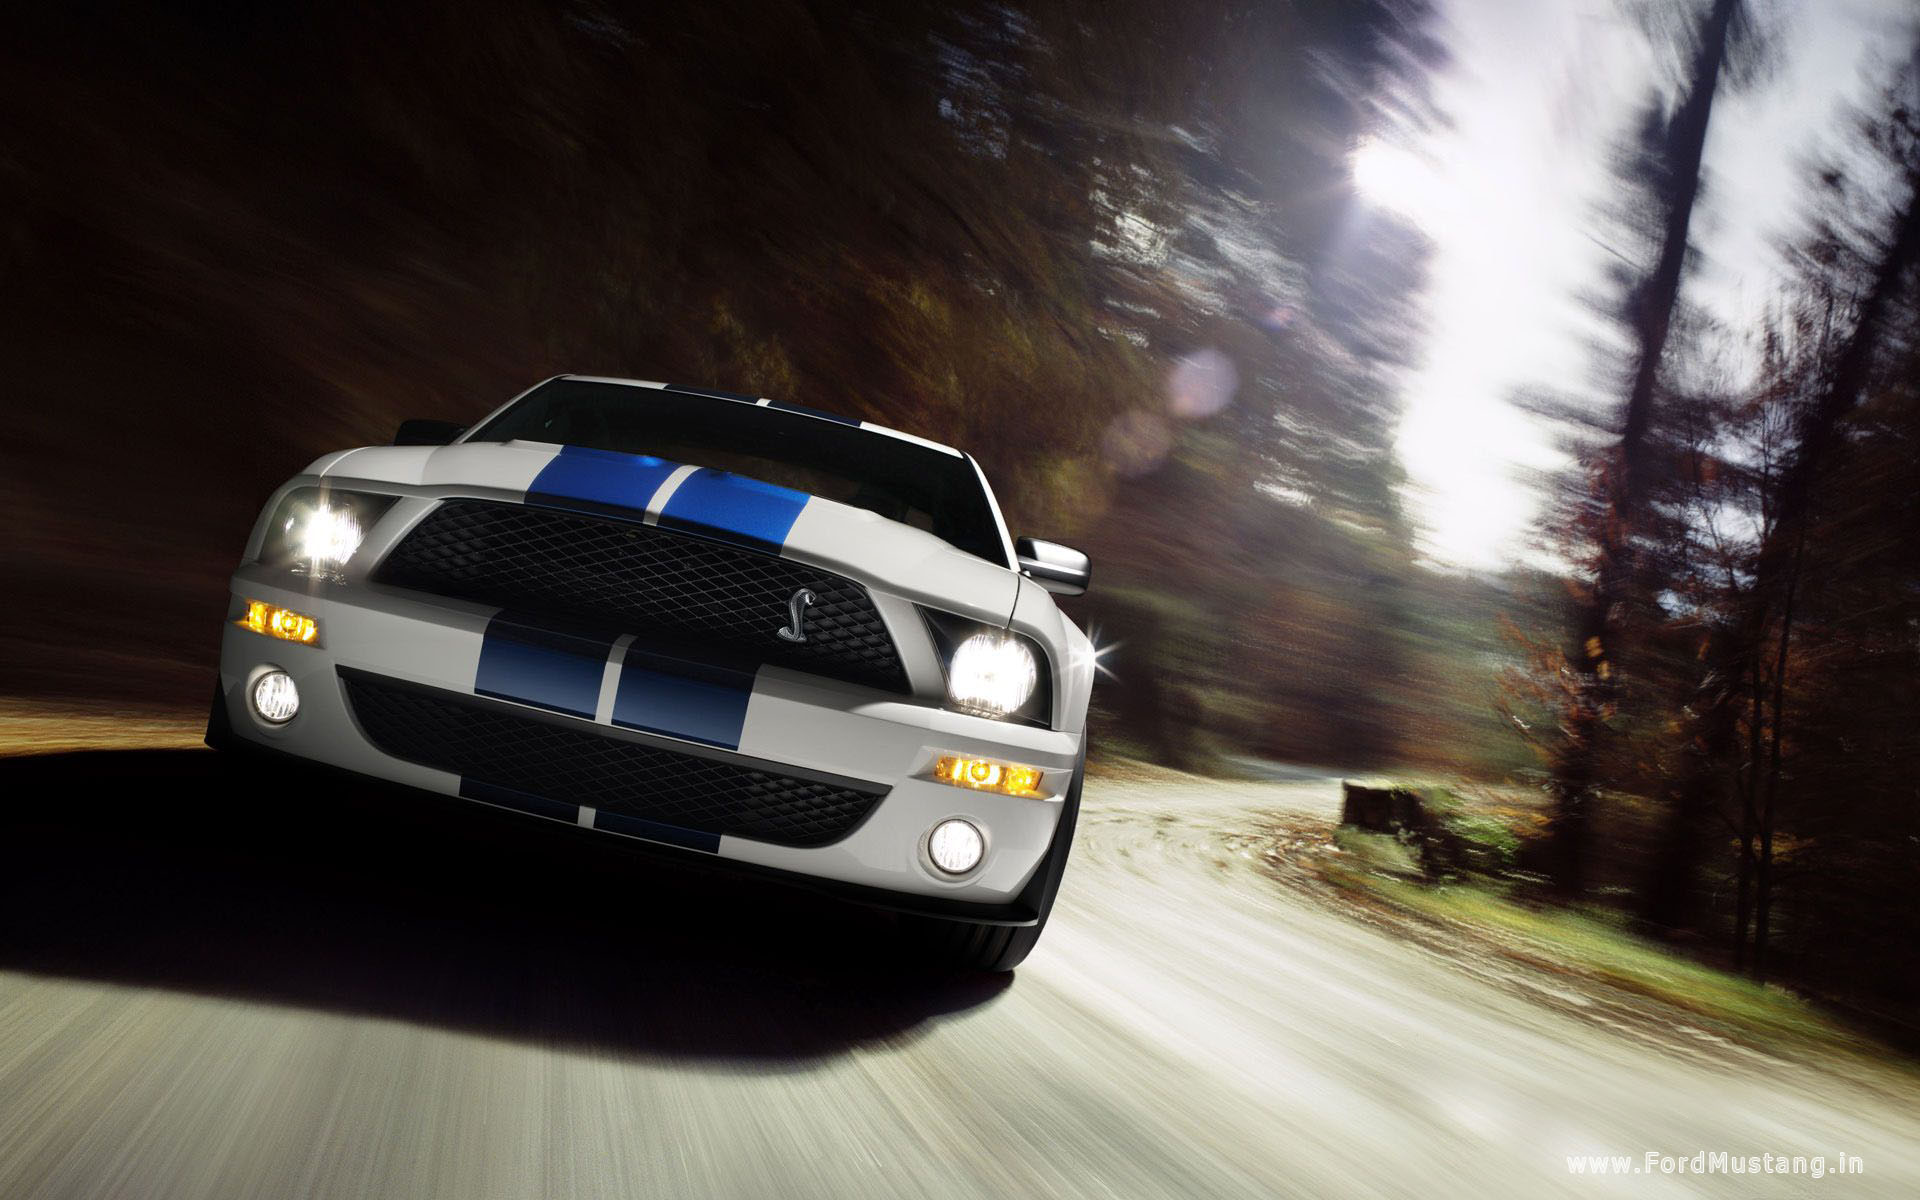 Hd wallpaper quality - Ford Mustang Wallpaper 3 Hq High Quality Ford Mustang Wallpaper